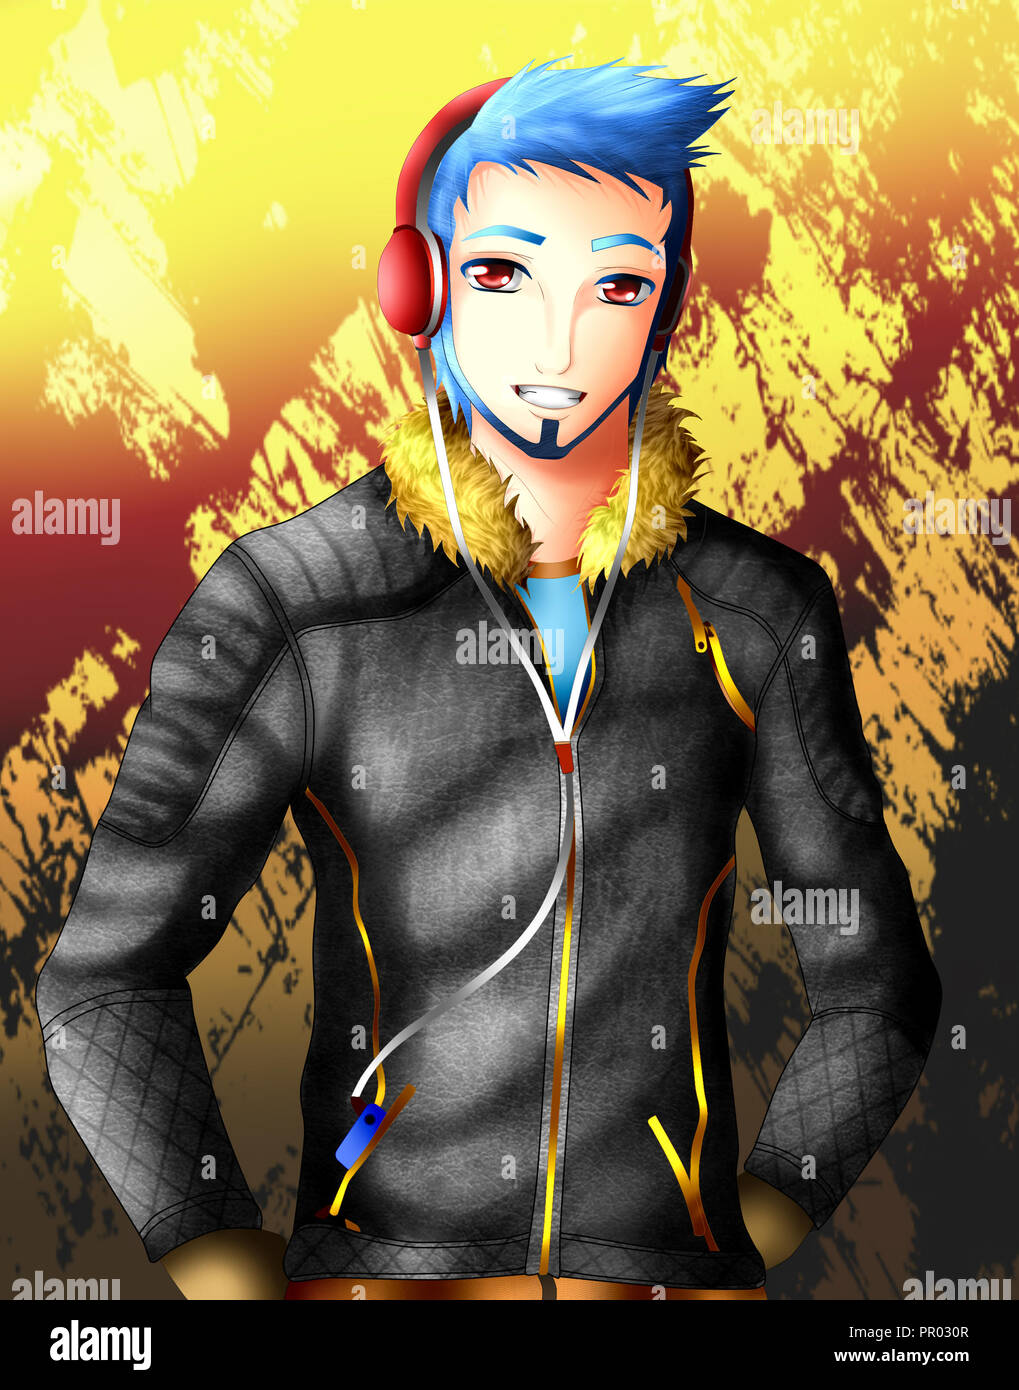 Anime Boy High Resolution Stock Photography And Images Alamy